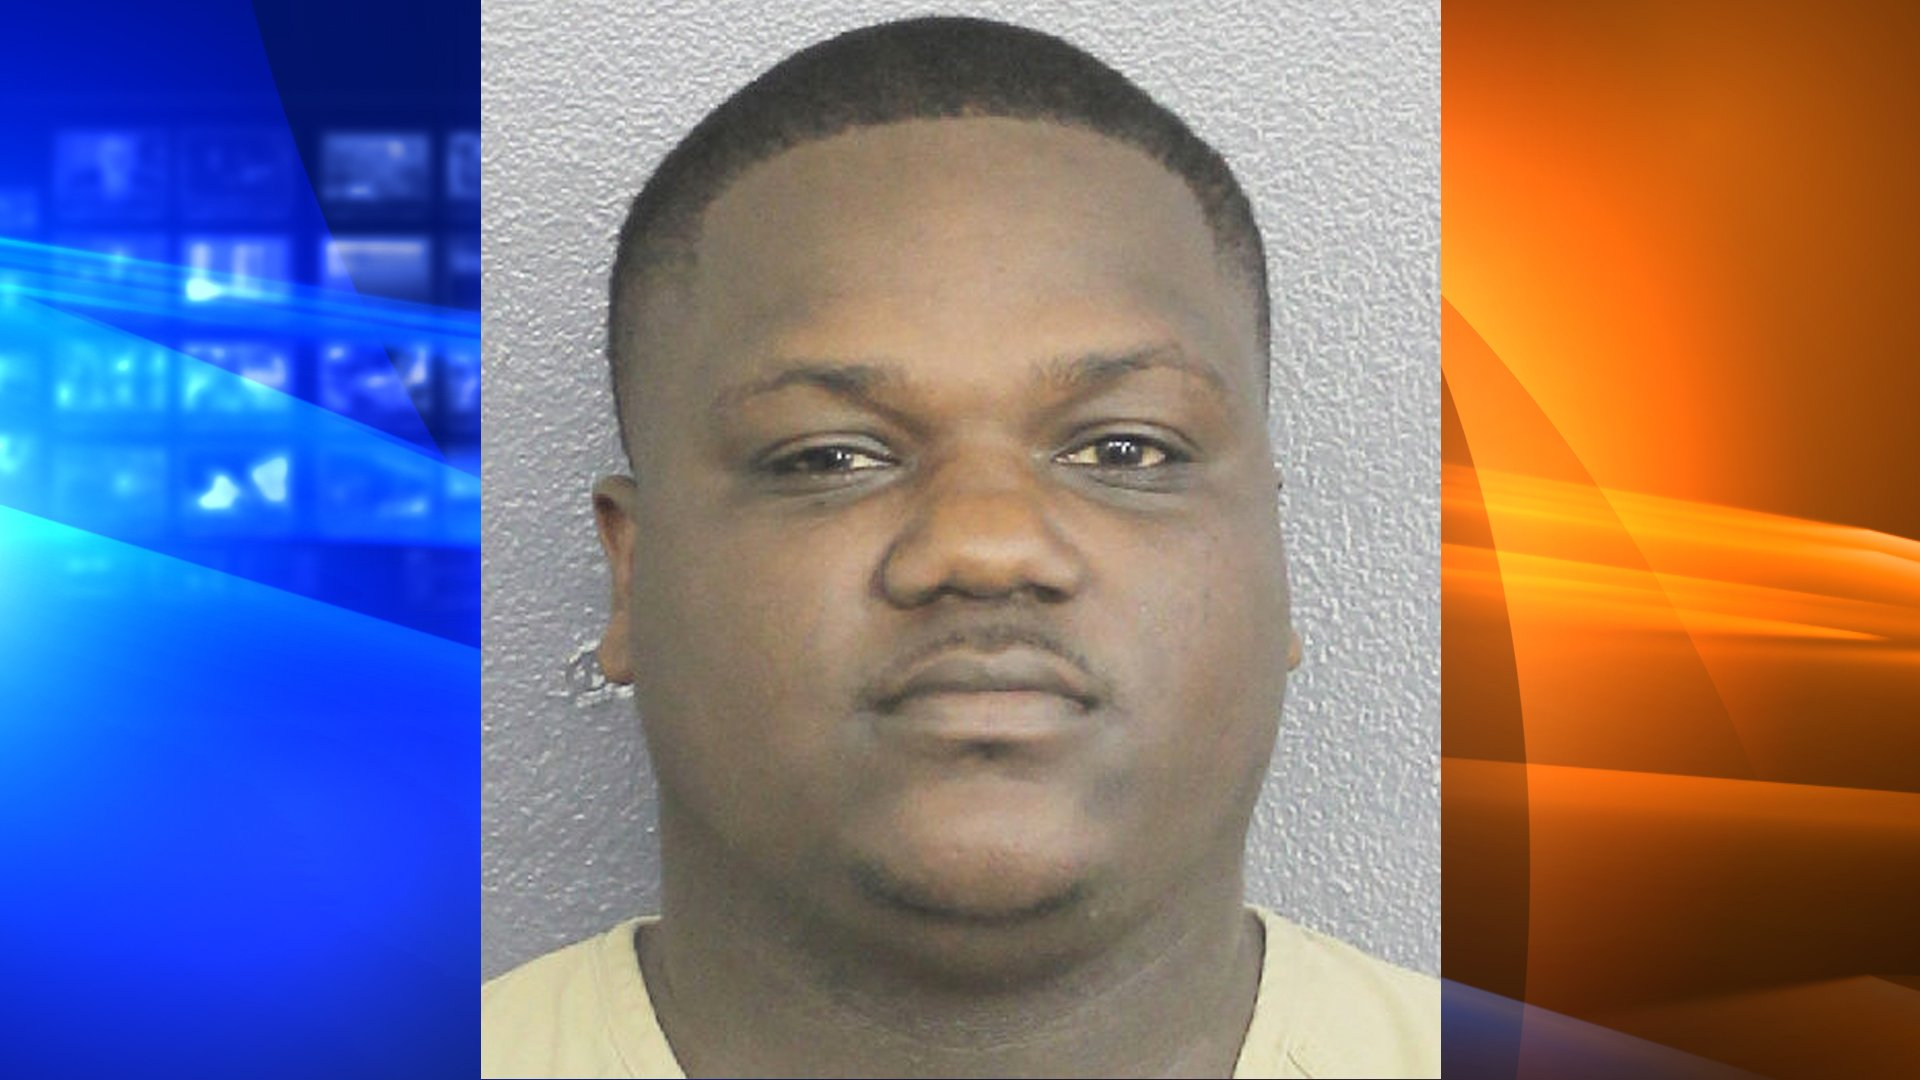 Chauncy Lump is seen in a booking photo released by the Broward County Sheriff's Office.